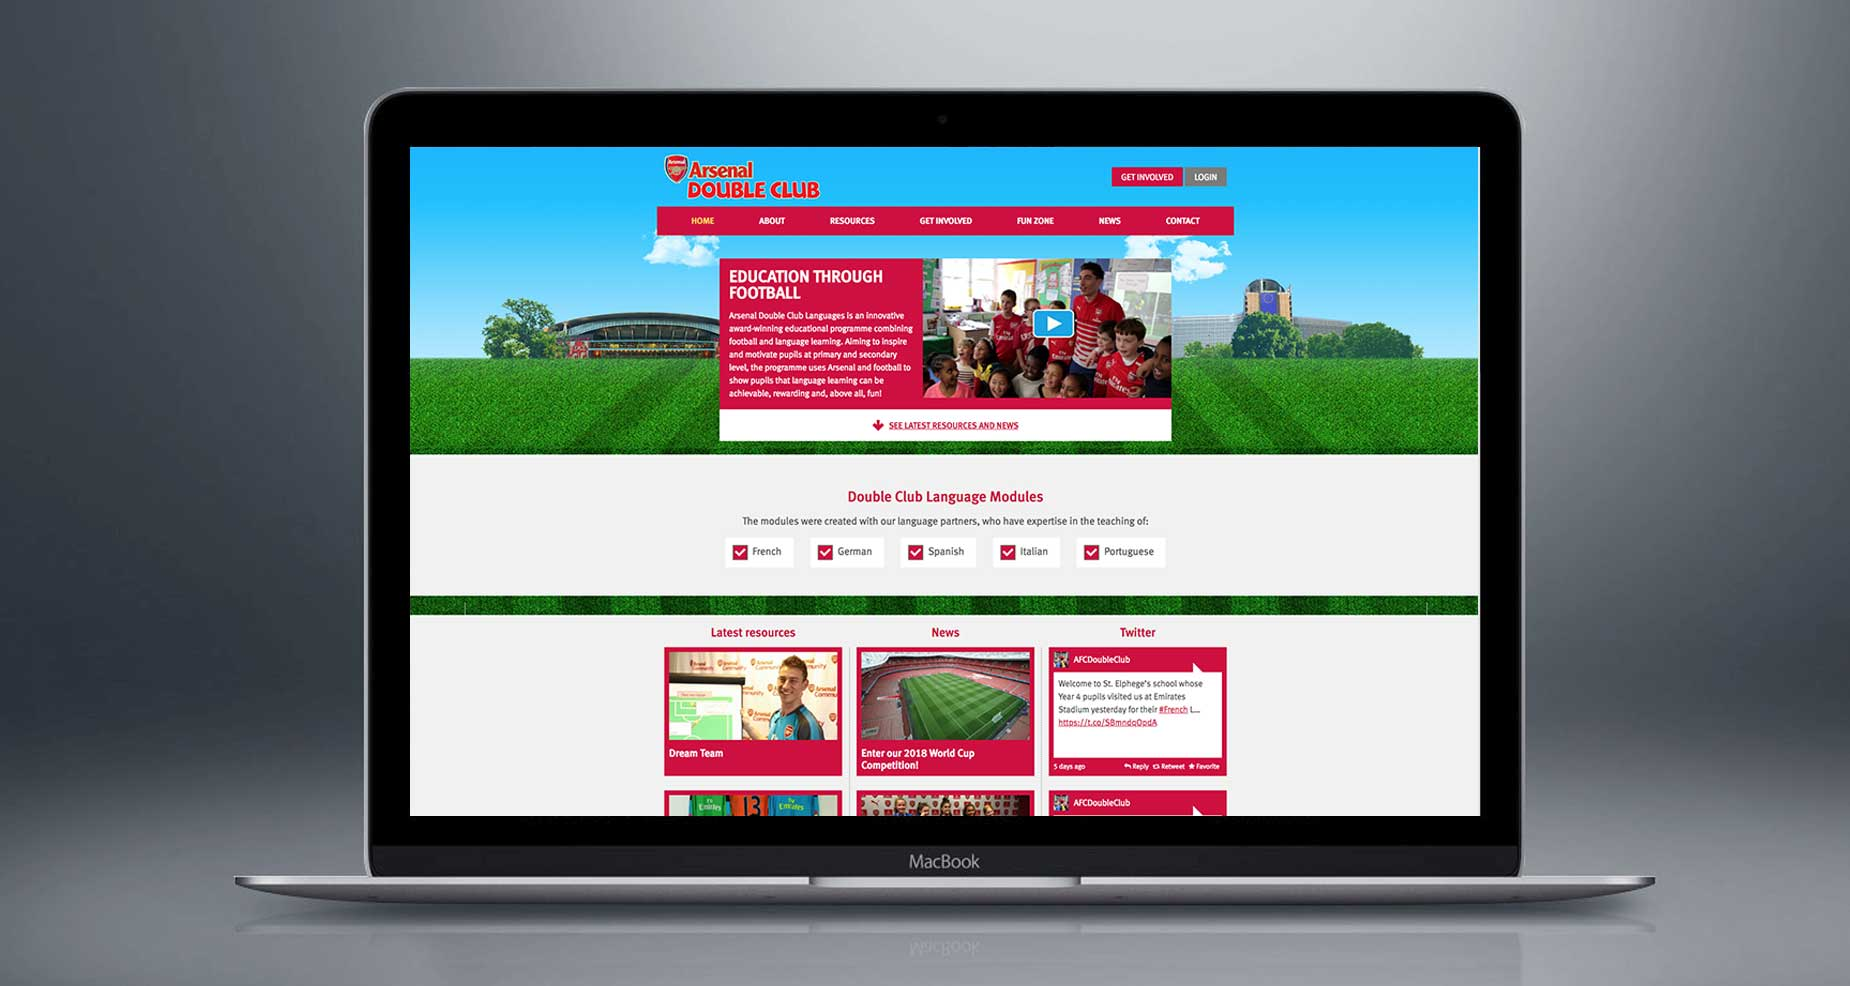 Arsenal double club website on a Macbook